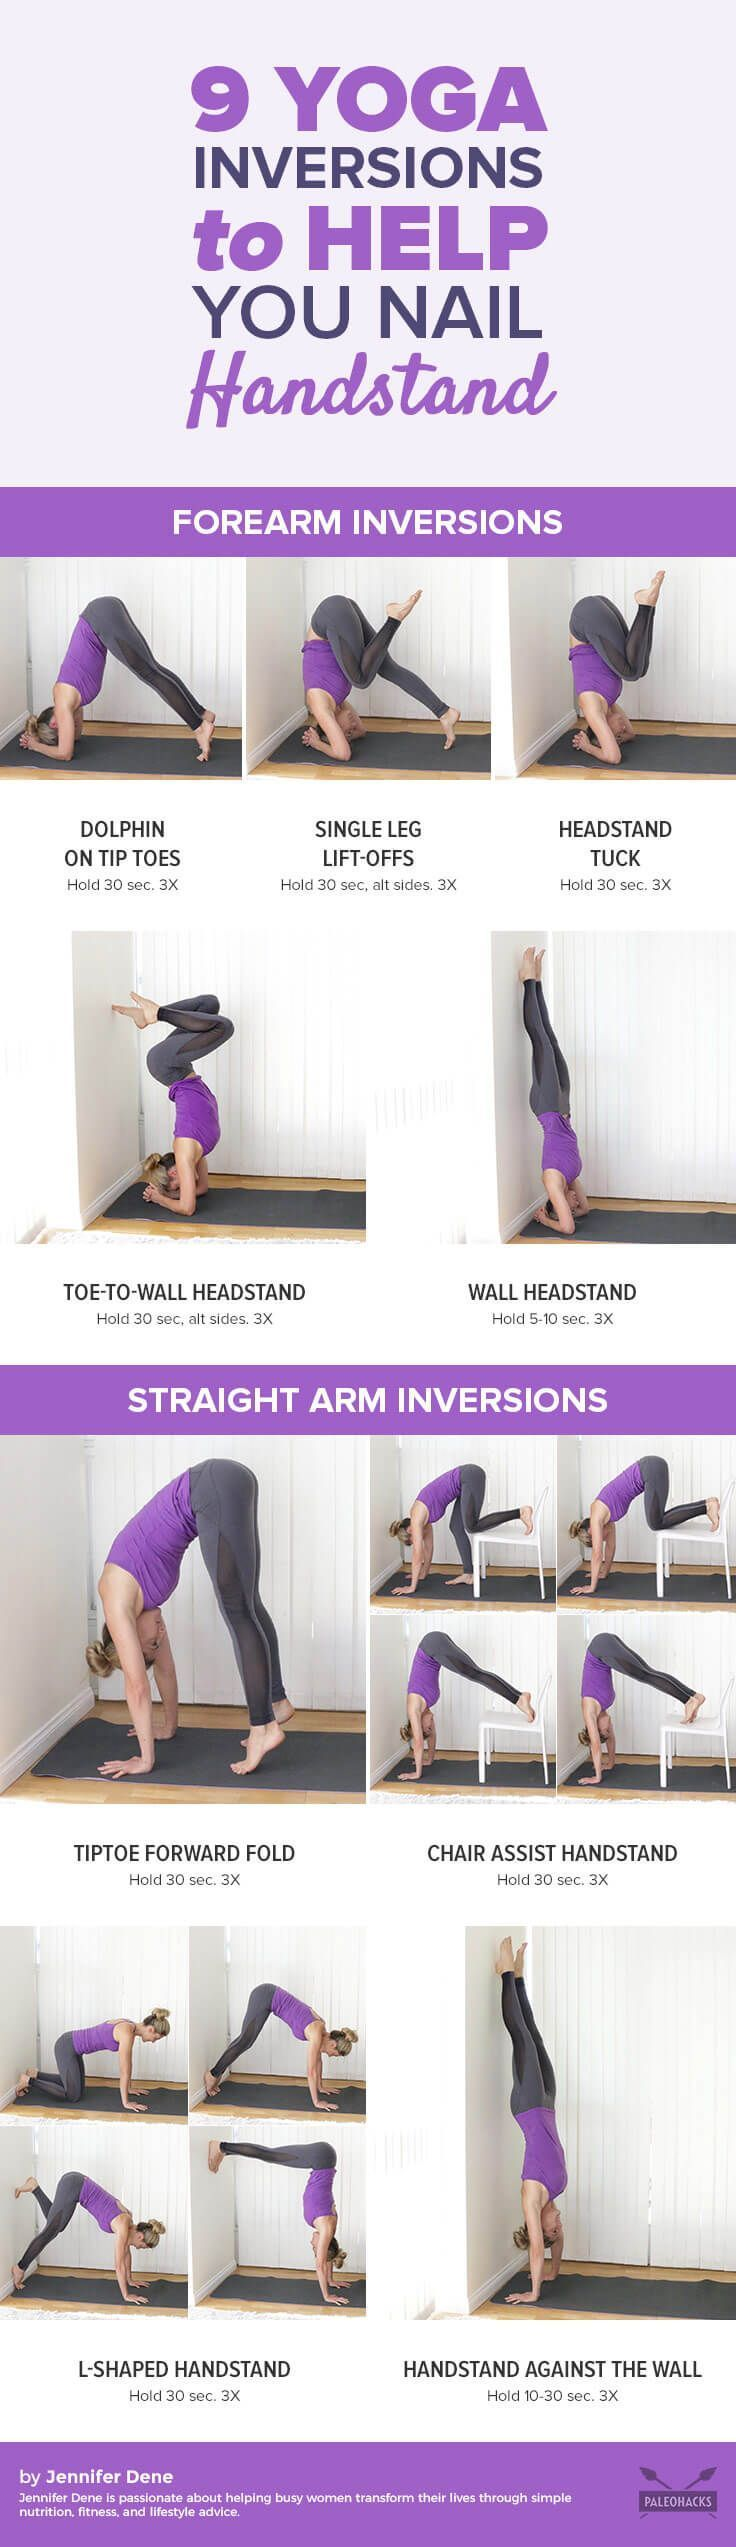 Going upside down can be a little intimidating if you are new to yoga. In this practice, I'm going to walk you through simple yoga inversions to get used to bearing the weight of your body. Along the way, you will discover ways to balance and feel the strengthening benefits of inverting! Get the workout here: http://paleo.co/9yogainversions